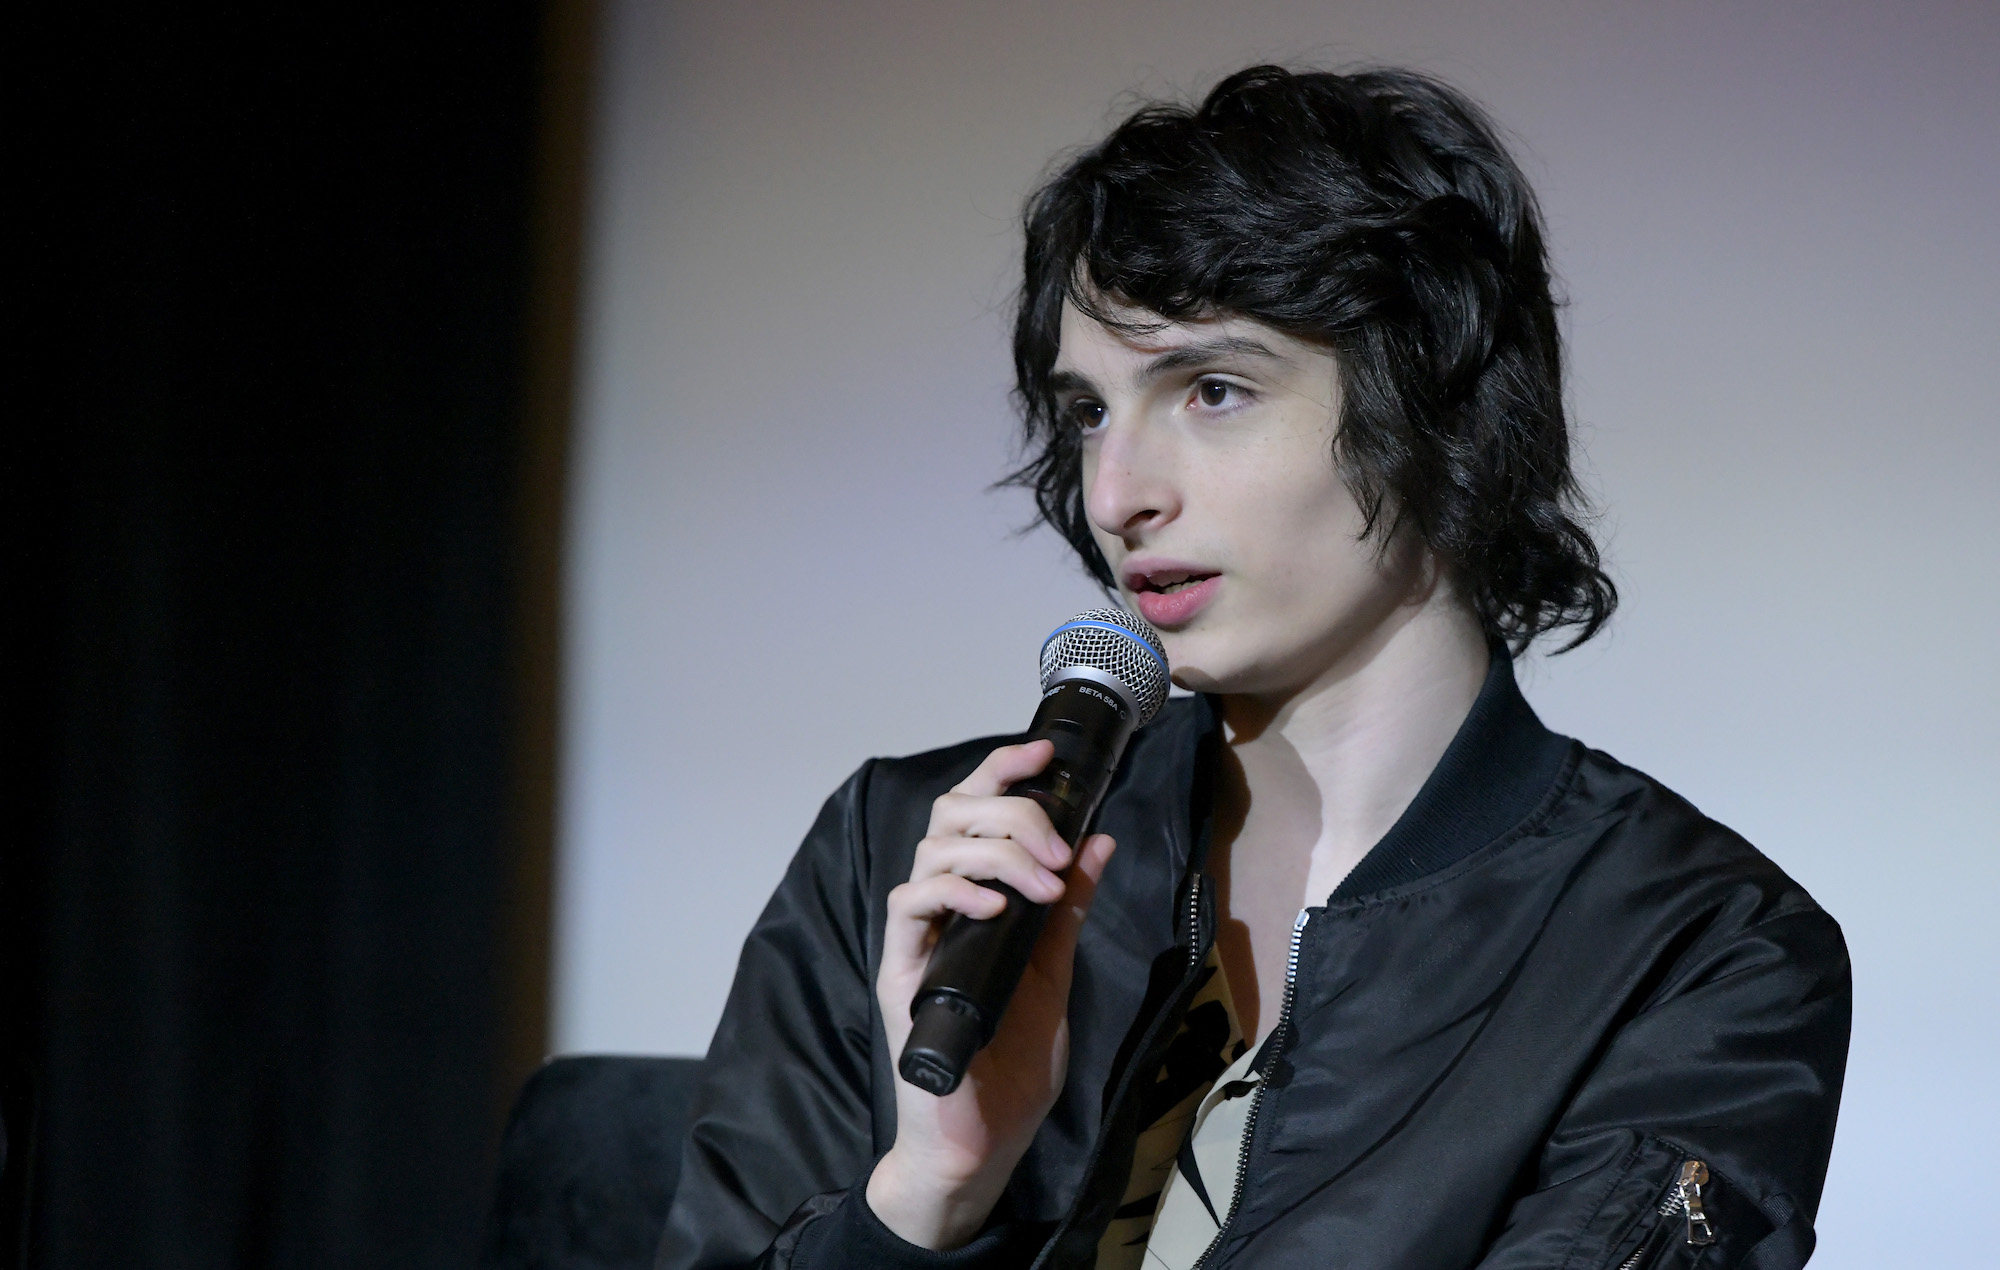 Finn Wolfhard has given up on learning to drive after failing his test twice